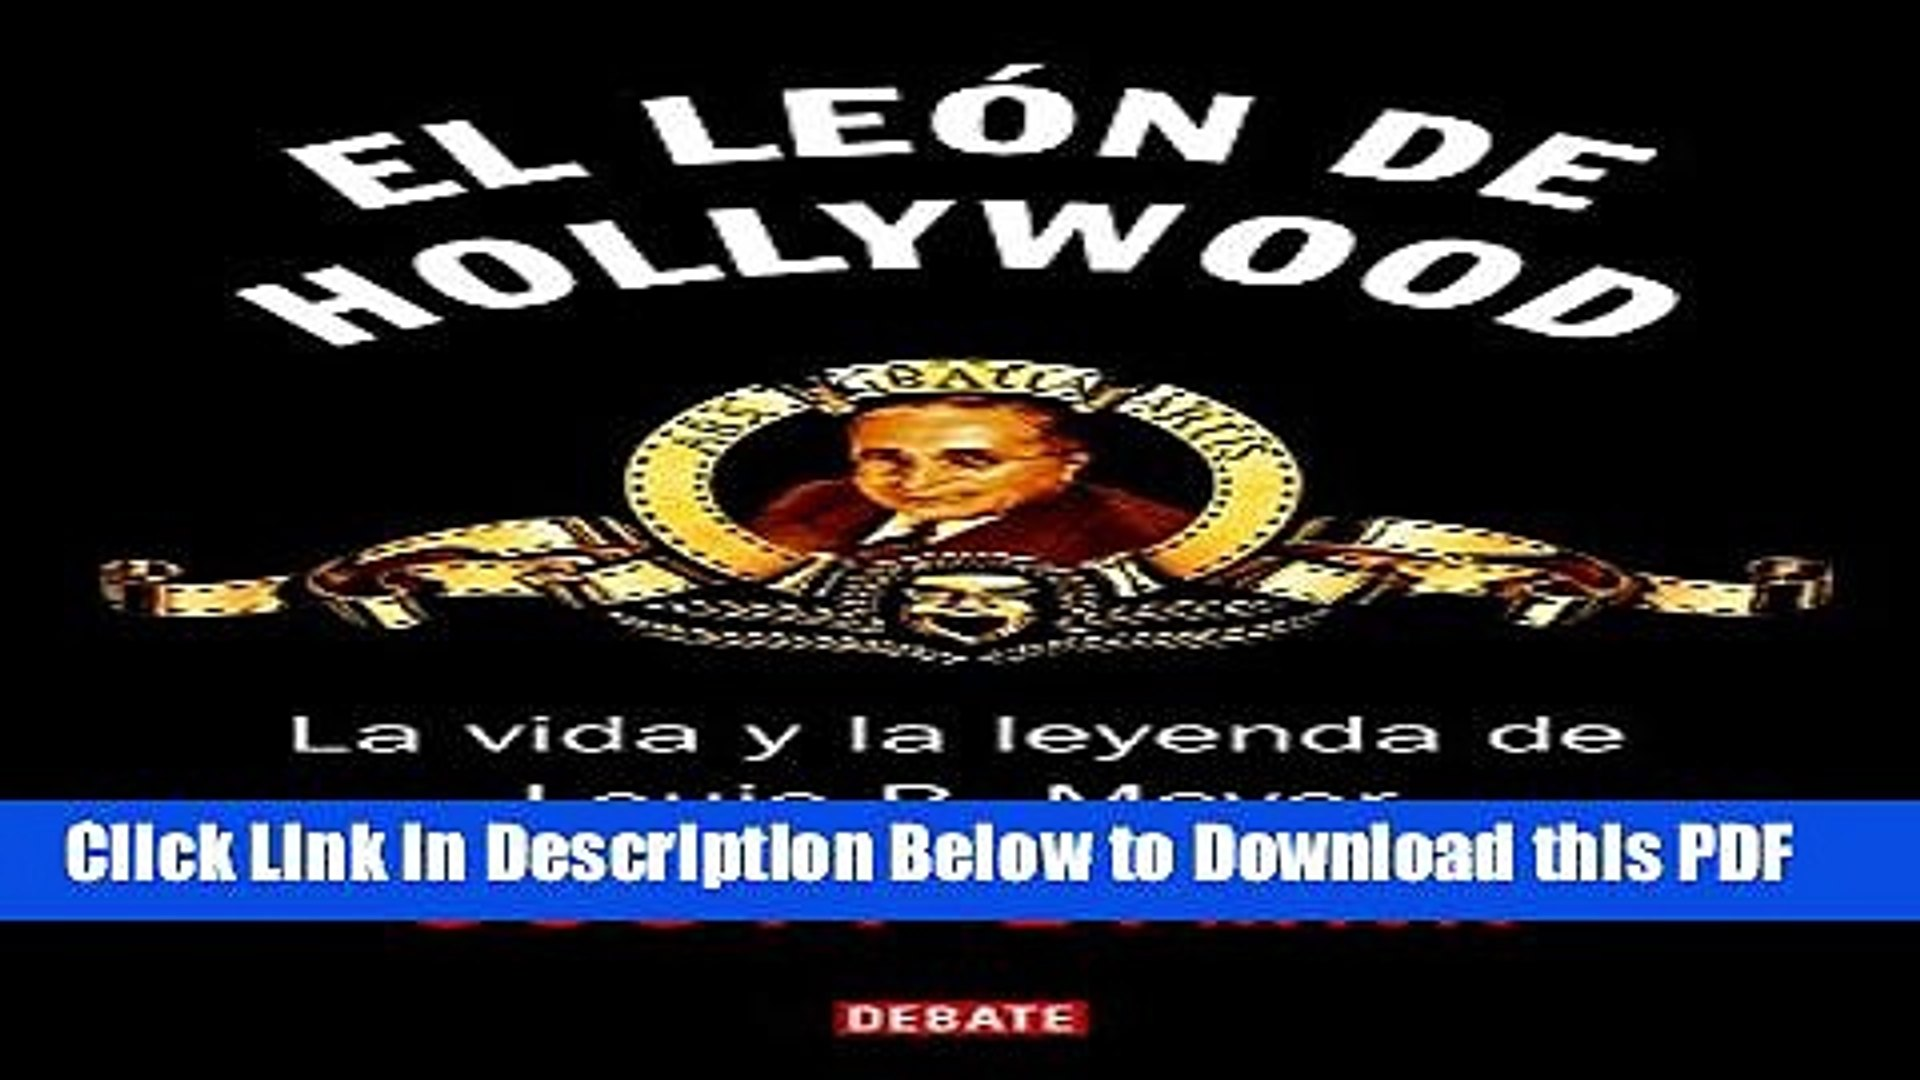 [Read] El Leon De Hollywood / Lion of Hollywood: La Vida Y La Leyenda De Louis B. Mayer / the Life